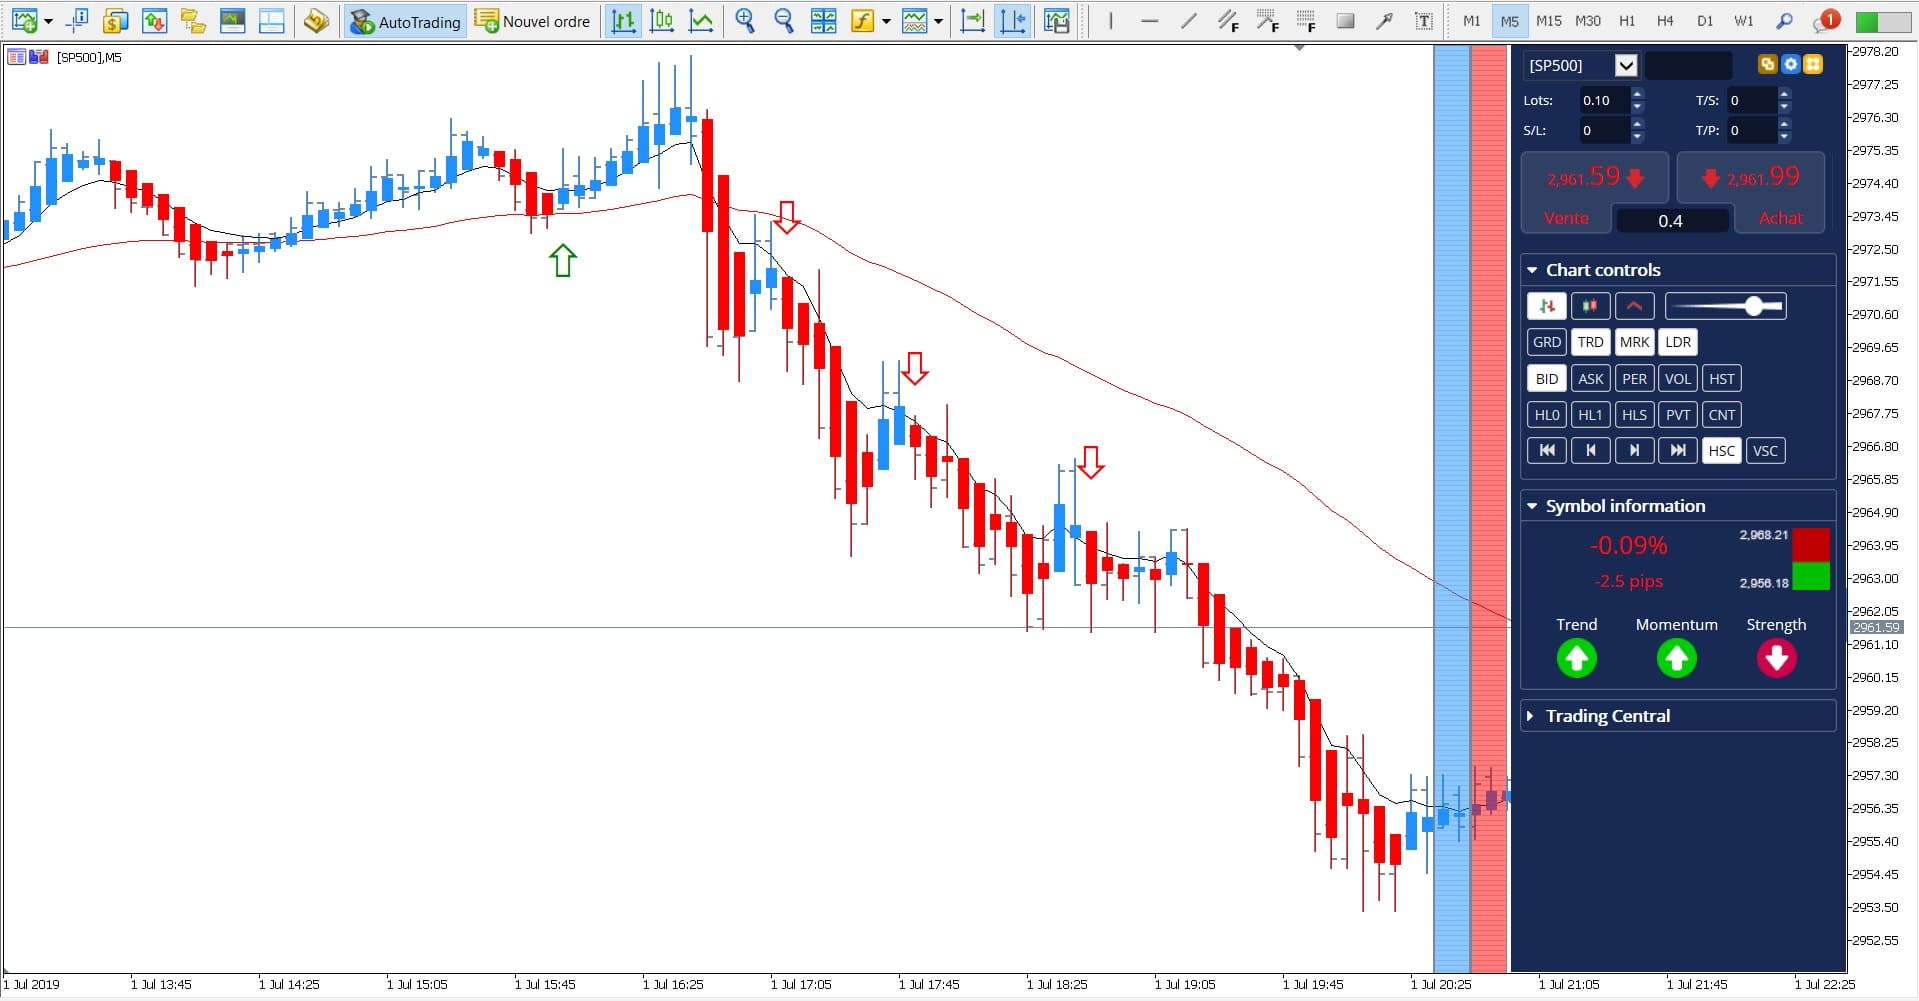 Day trading Stratégie Trading SP500